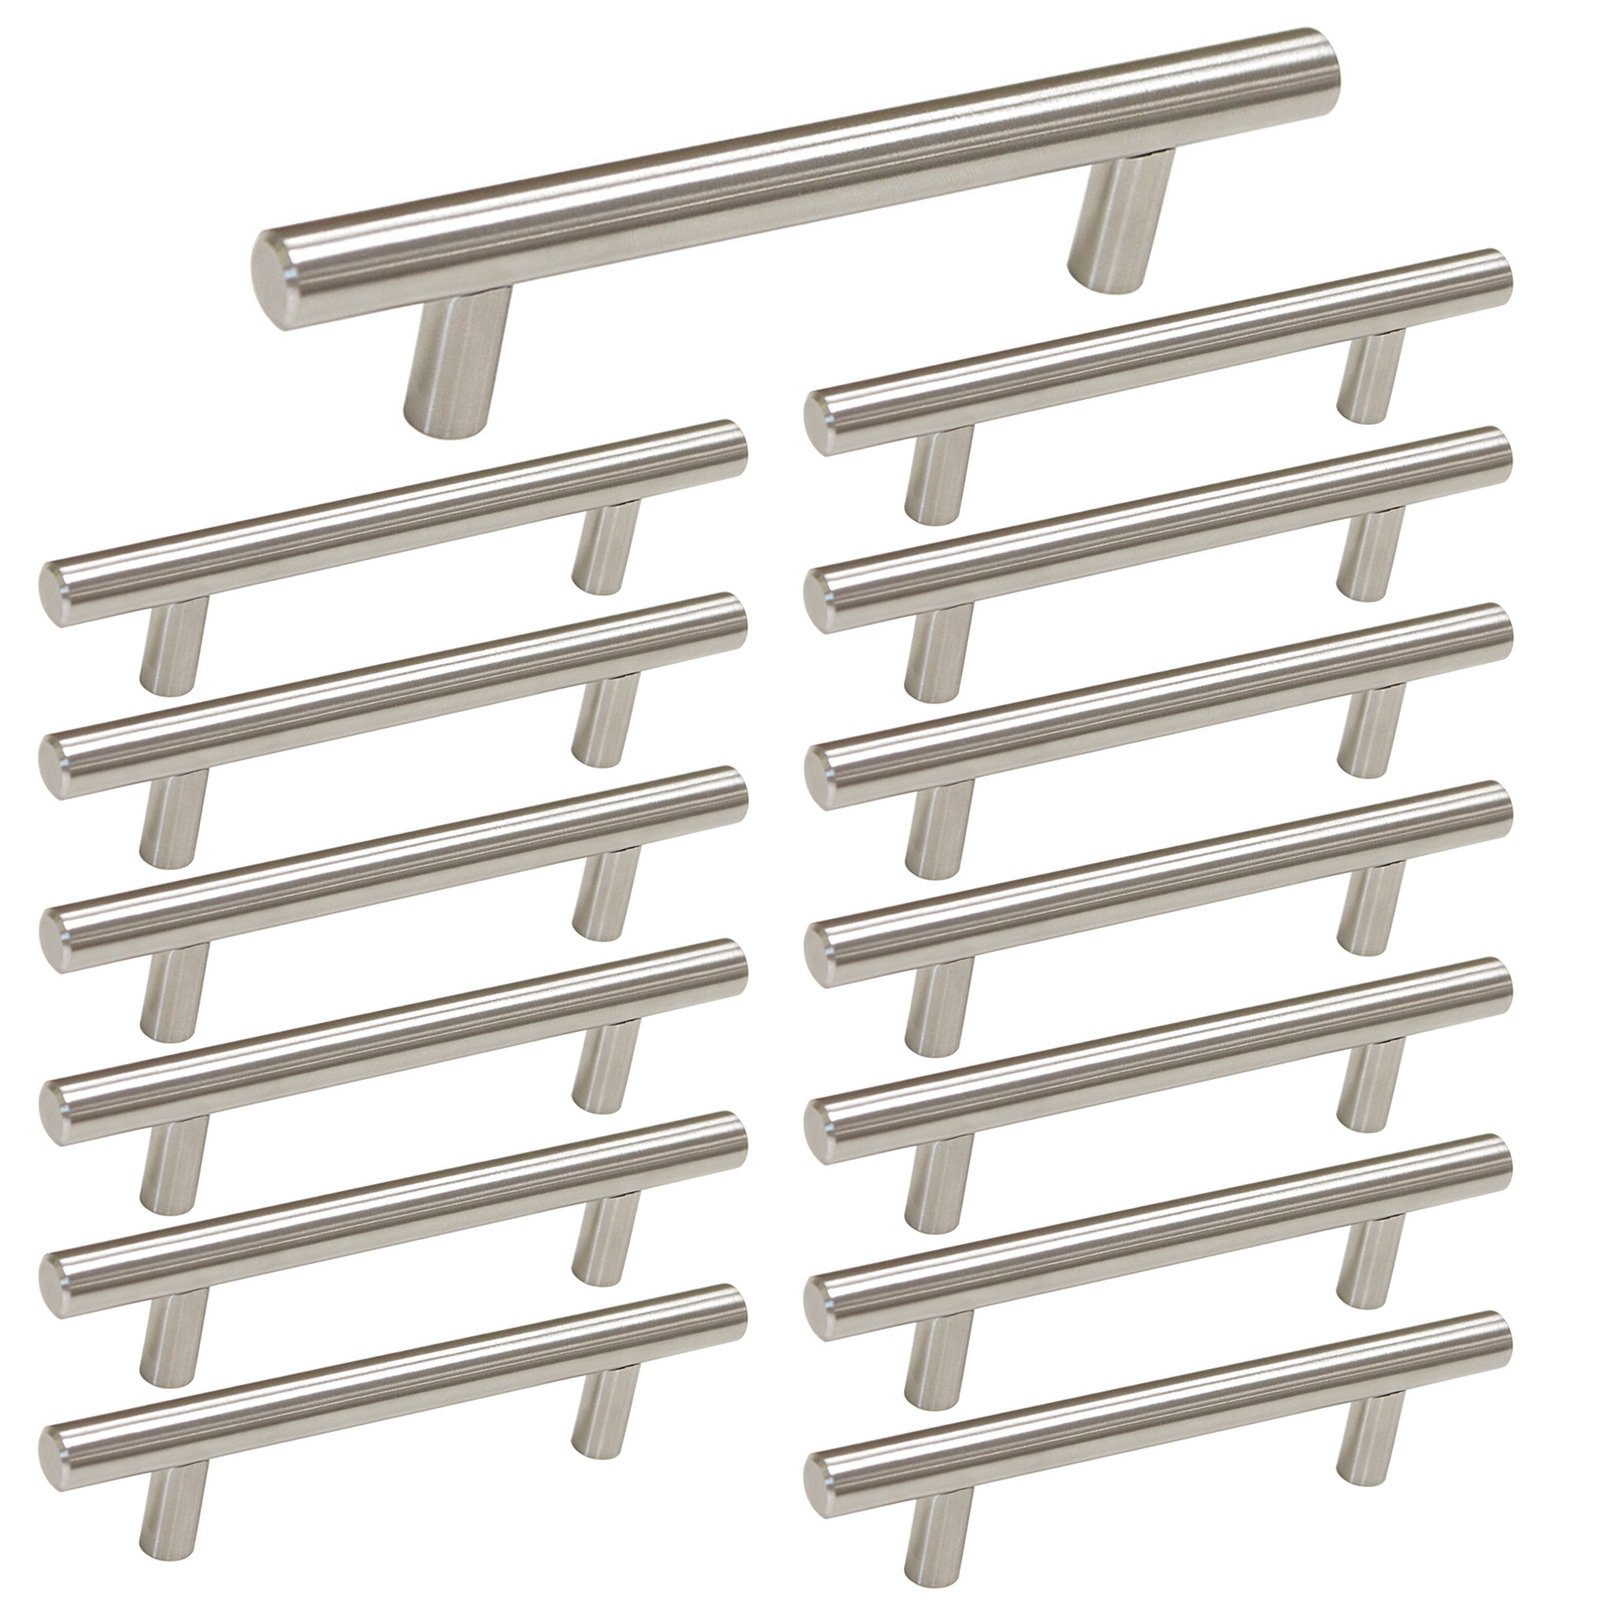 Brushed Nickel Cabinet Hardware Kitchen Cabinet Pulls 15 Pack -Homdiy HD201SN 3-3/4 in Hole Centers T Bar Cupboard Drawer Pulls Stainless Steel